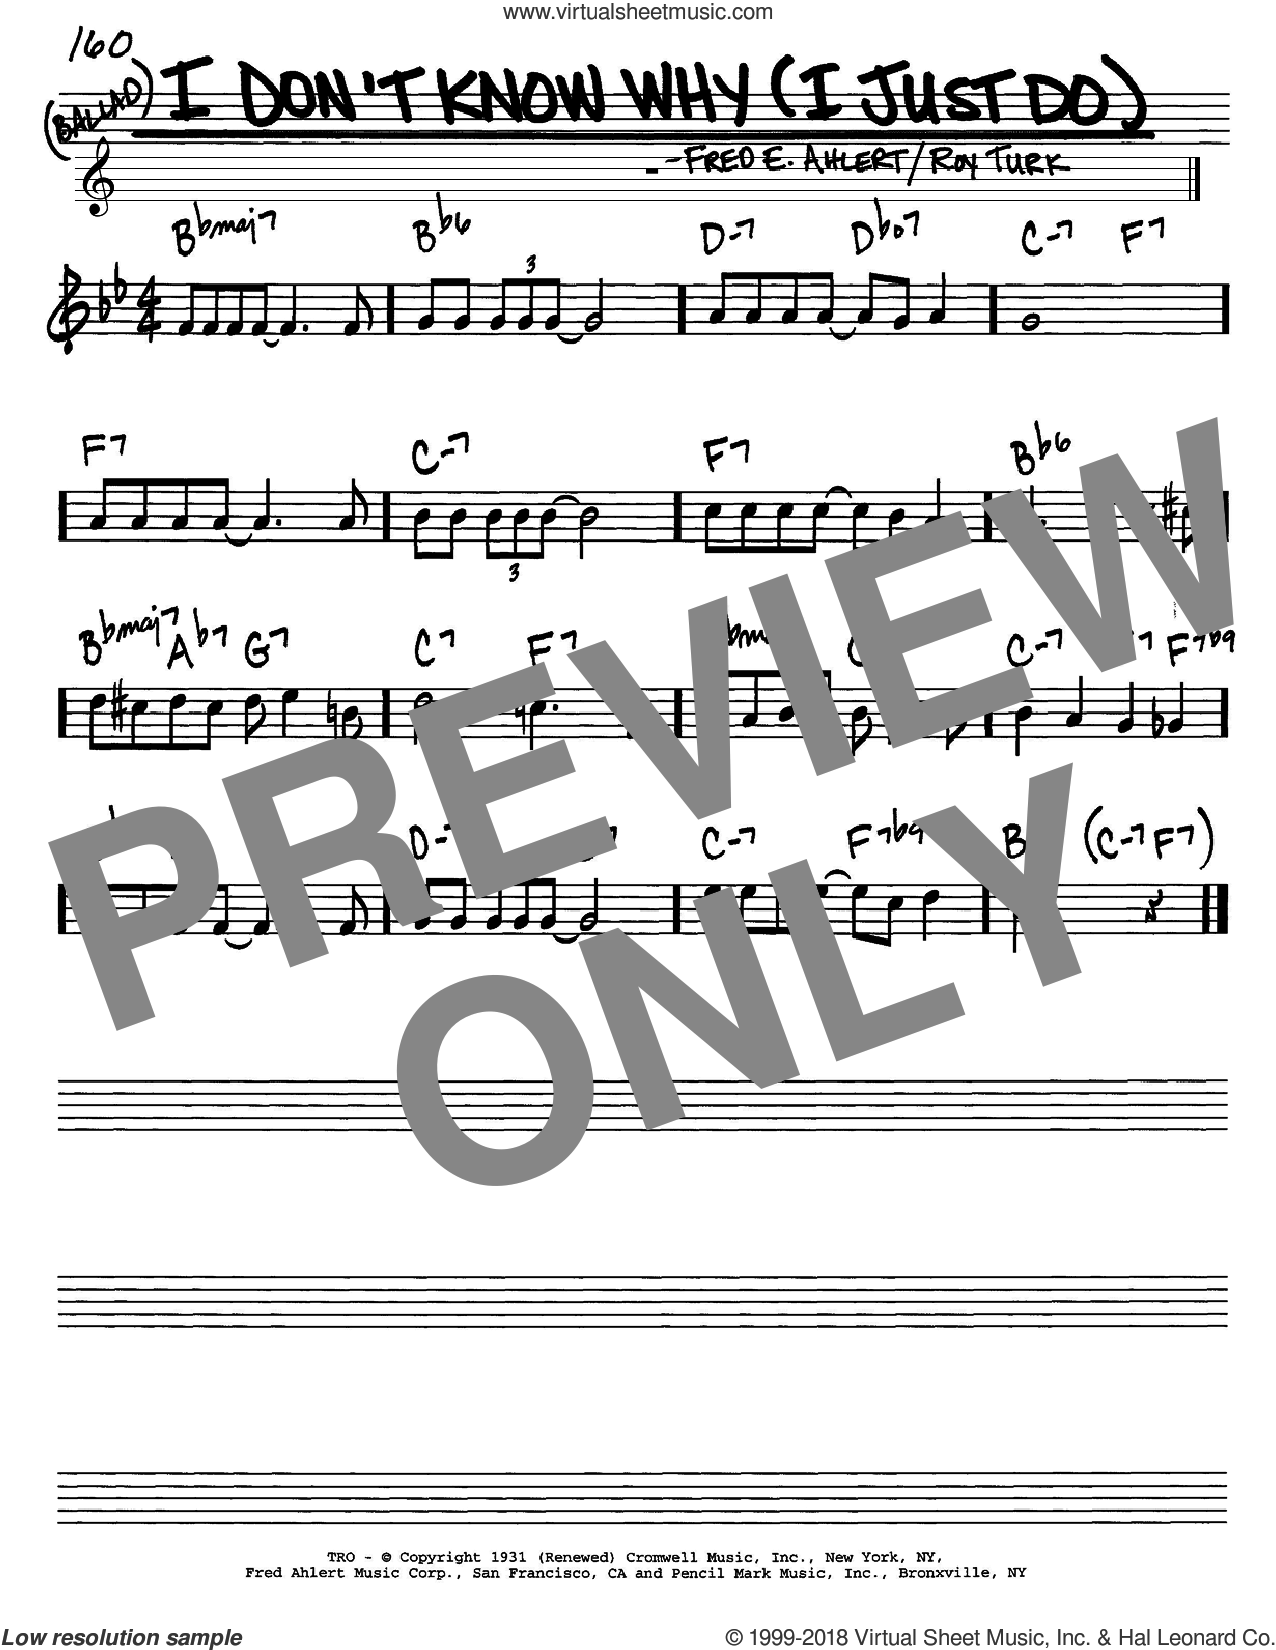 I Don't Know Why (I Just Do) sheet music for voice and other instruments (C) by Roy Turk